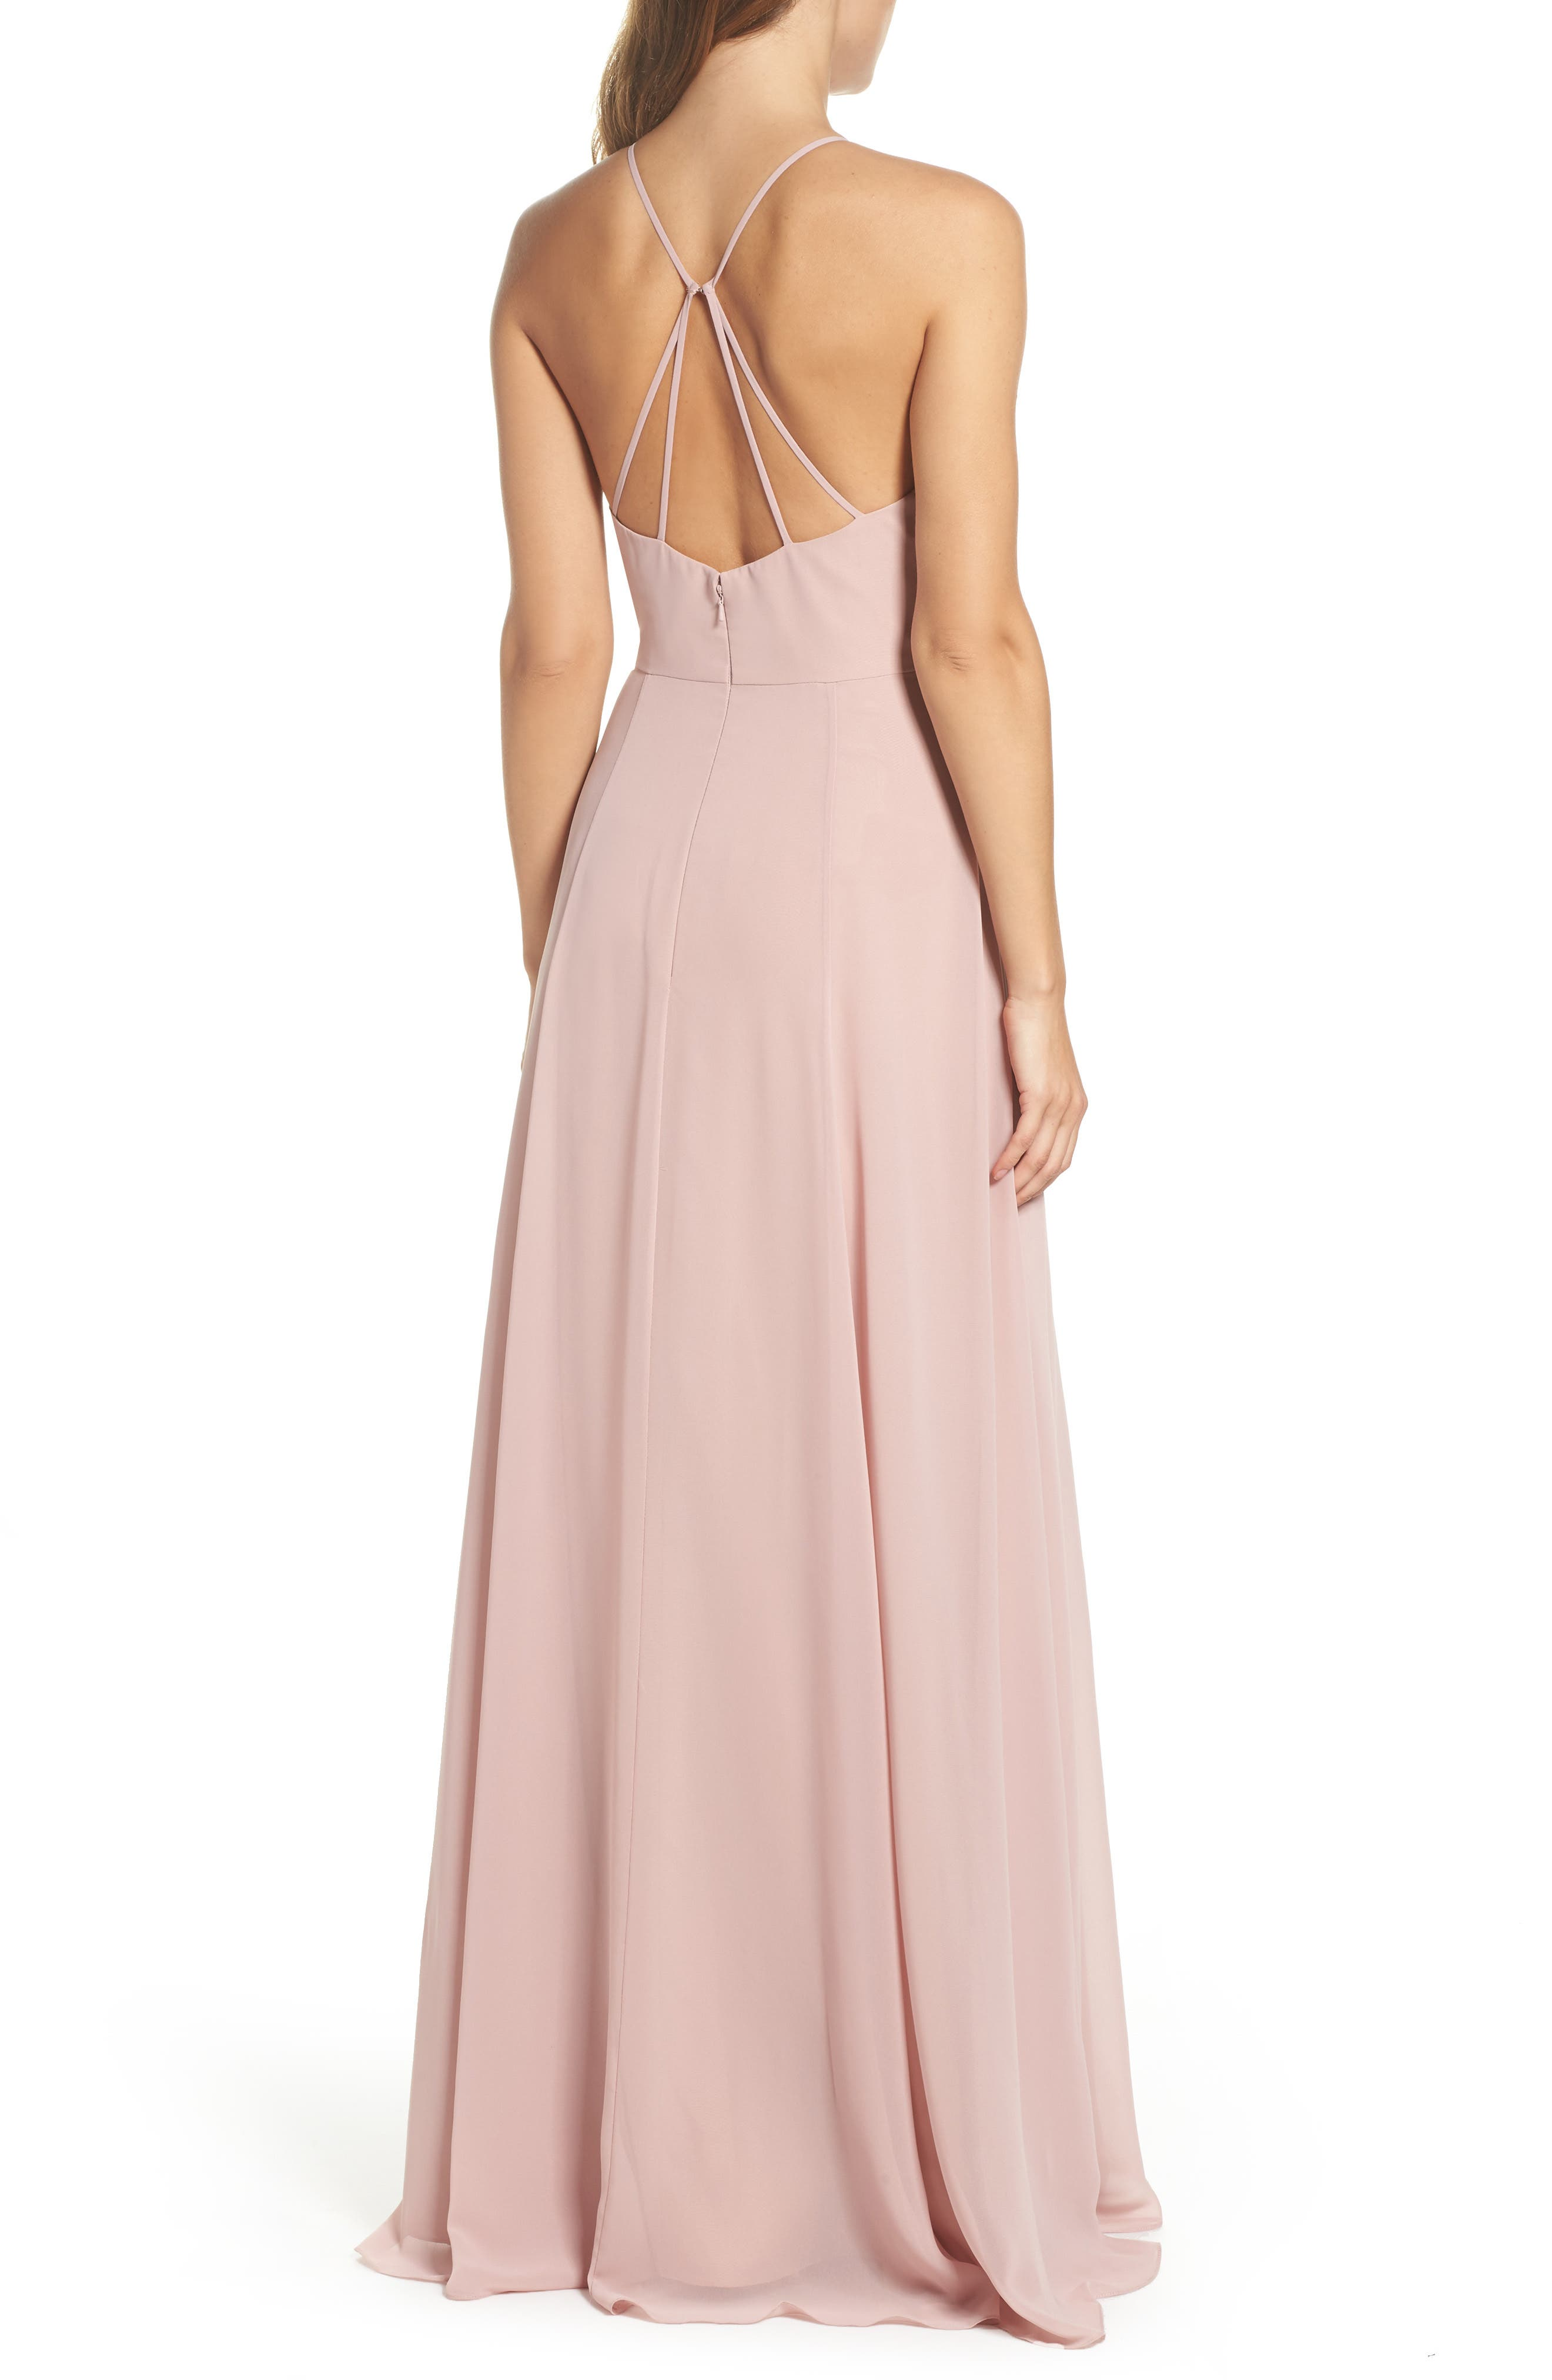 JENNY YOO, Kayla A-Line Halter Gown, Alternate thumbnail 2, color, WHIPPED APRICOT